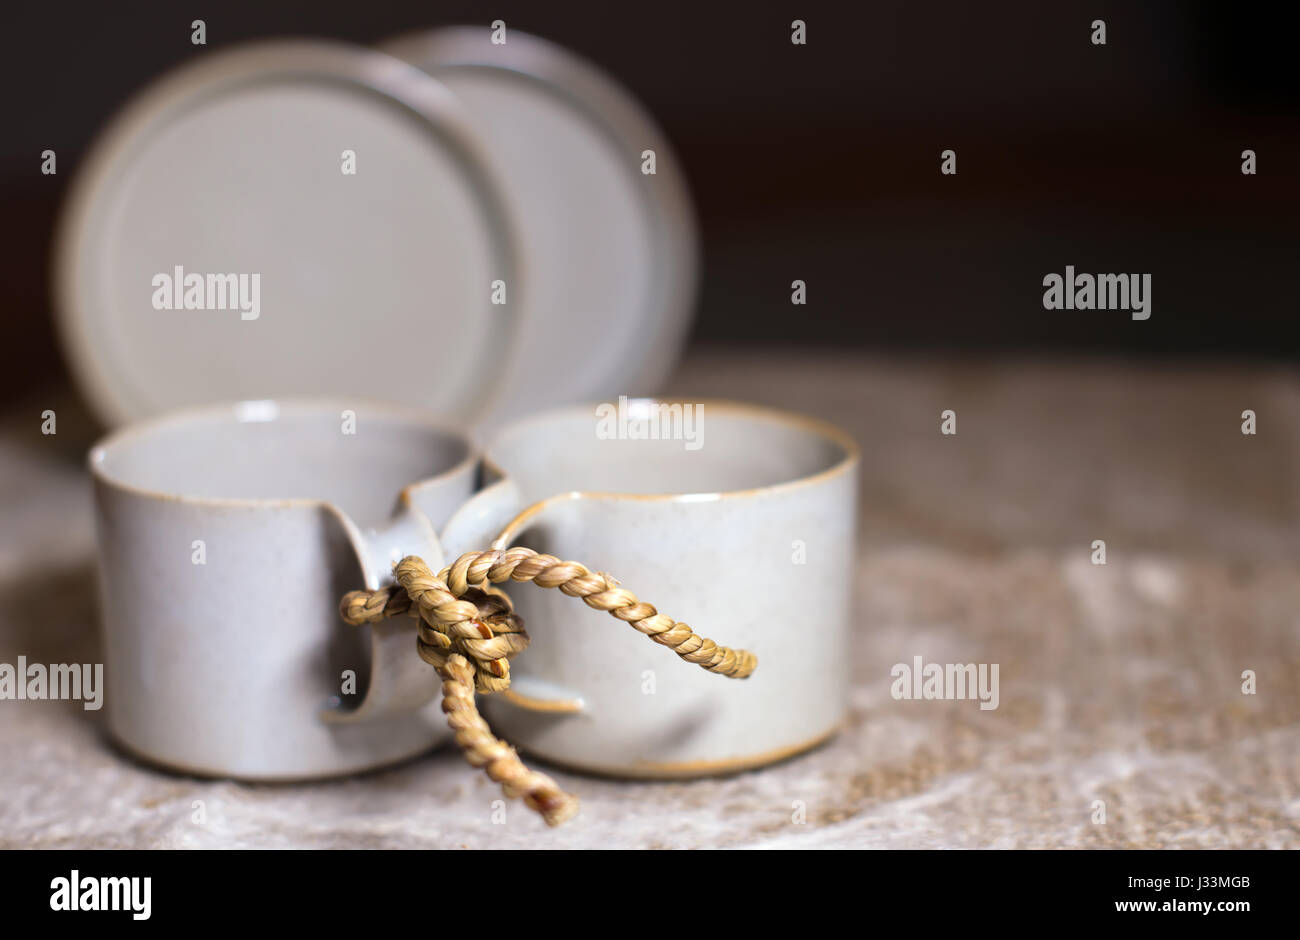 Symbol Of Loyalty Stock Photos Symbol Of Loyalty Stock Images Alamy